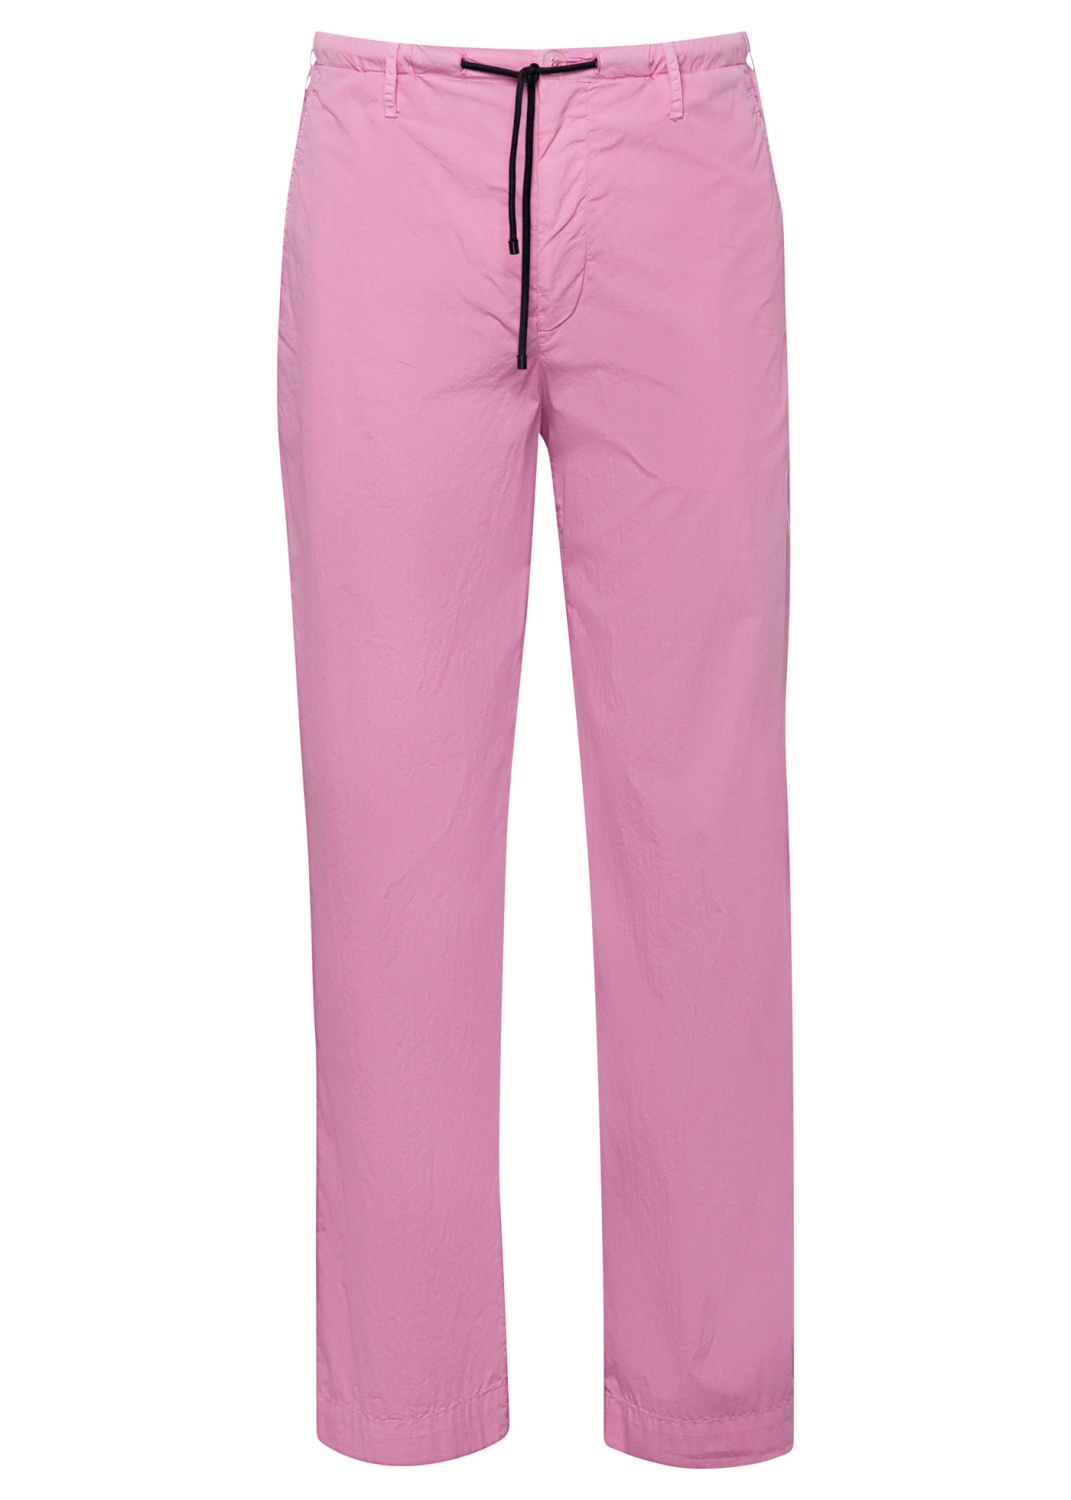 PENNY 2279 M.W. PANTS image number 0